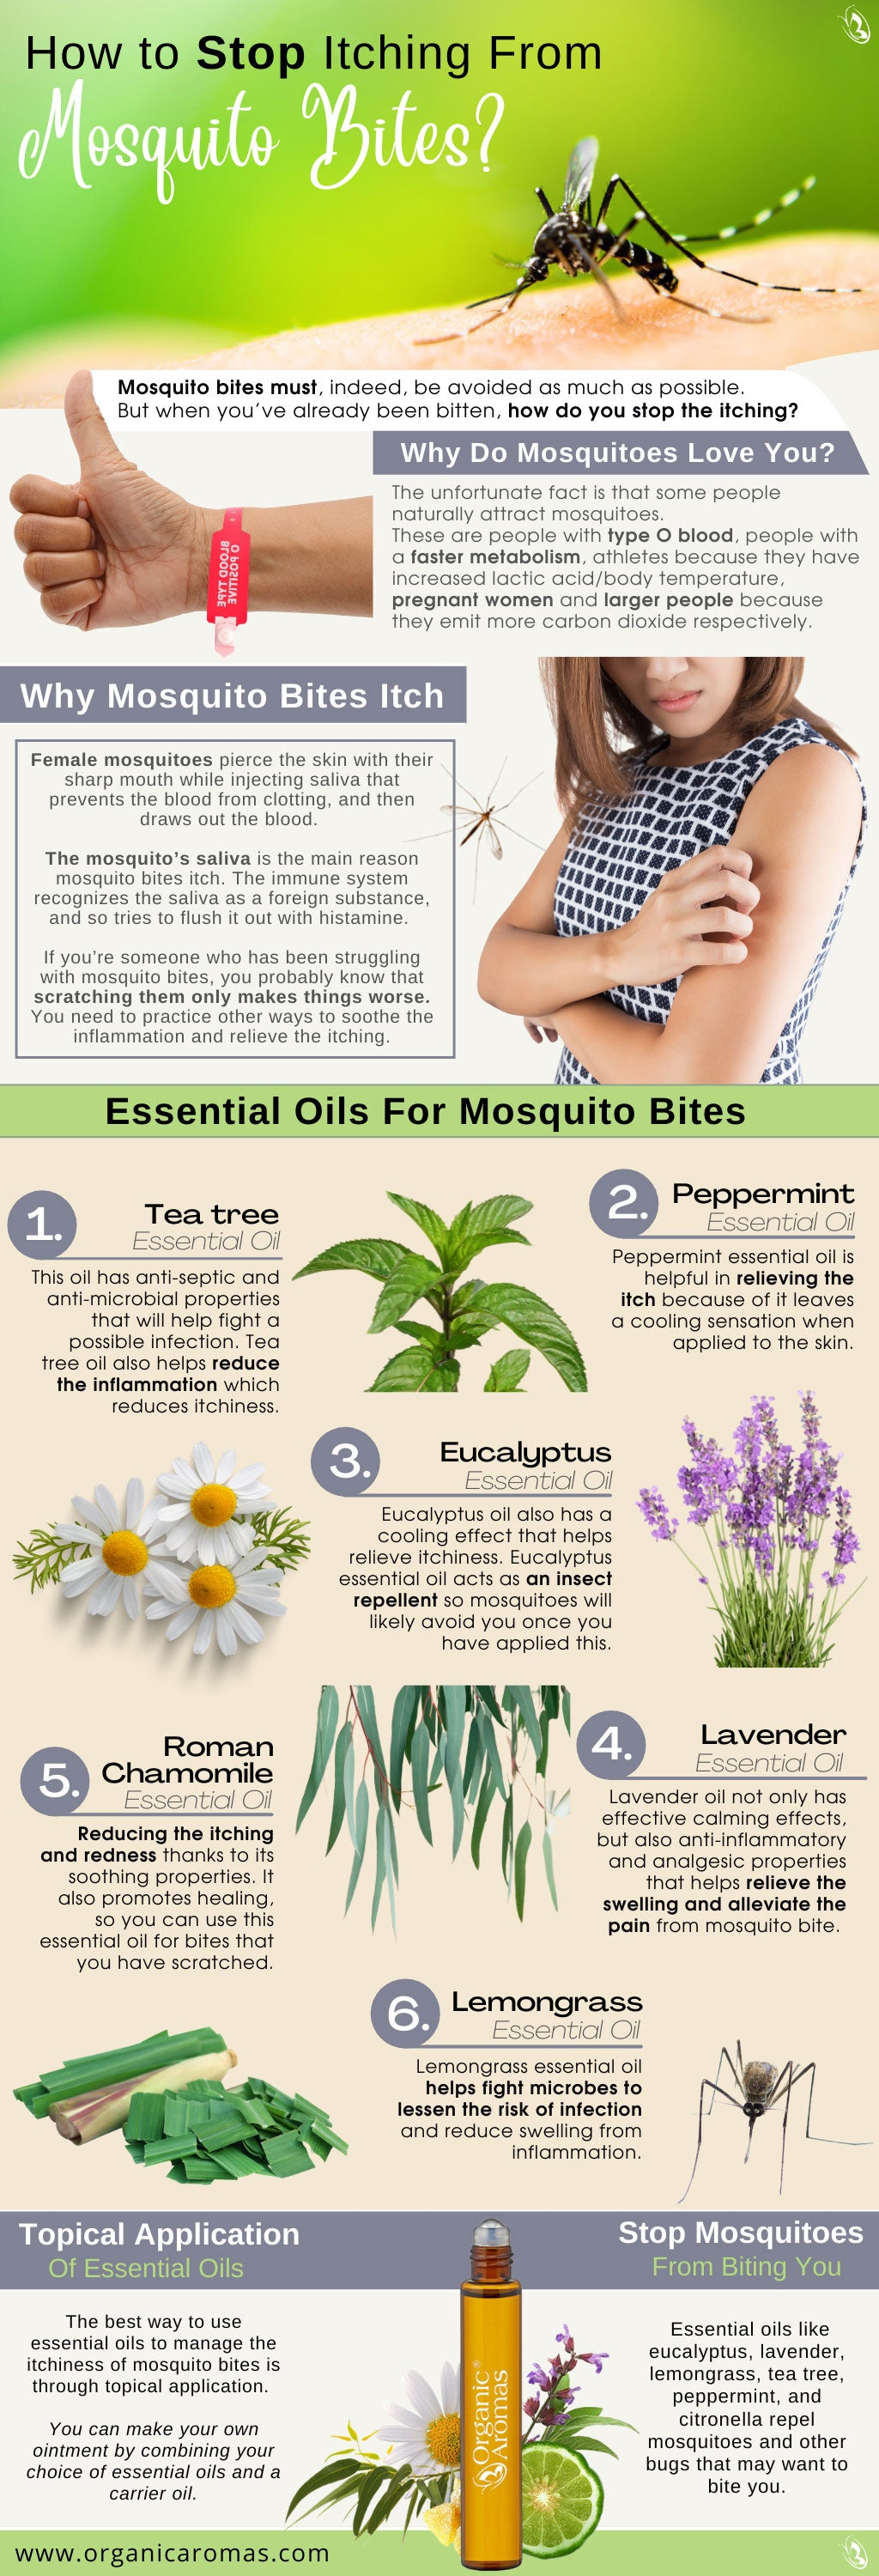 How to Stop Itching From Mosquito Bites?